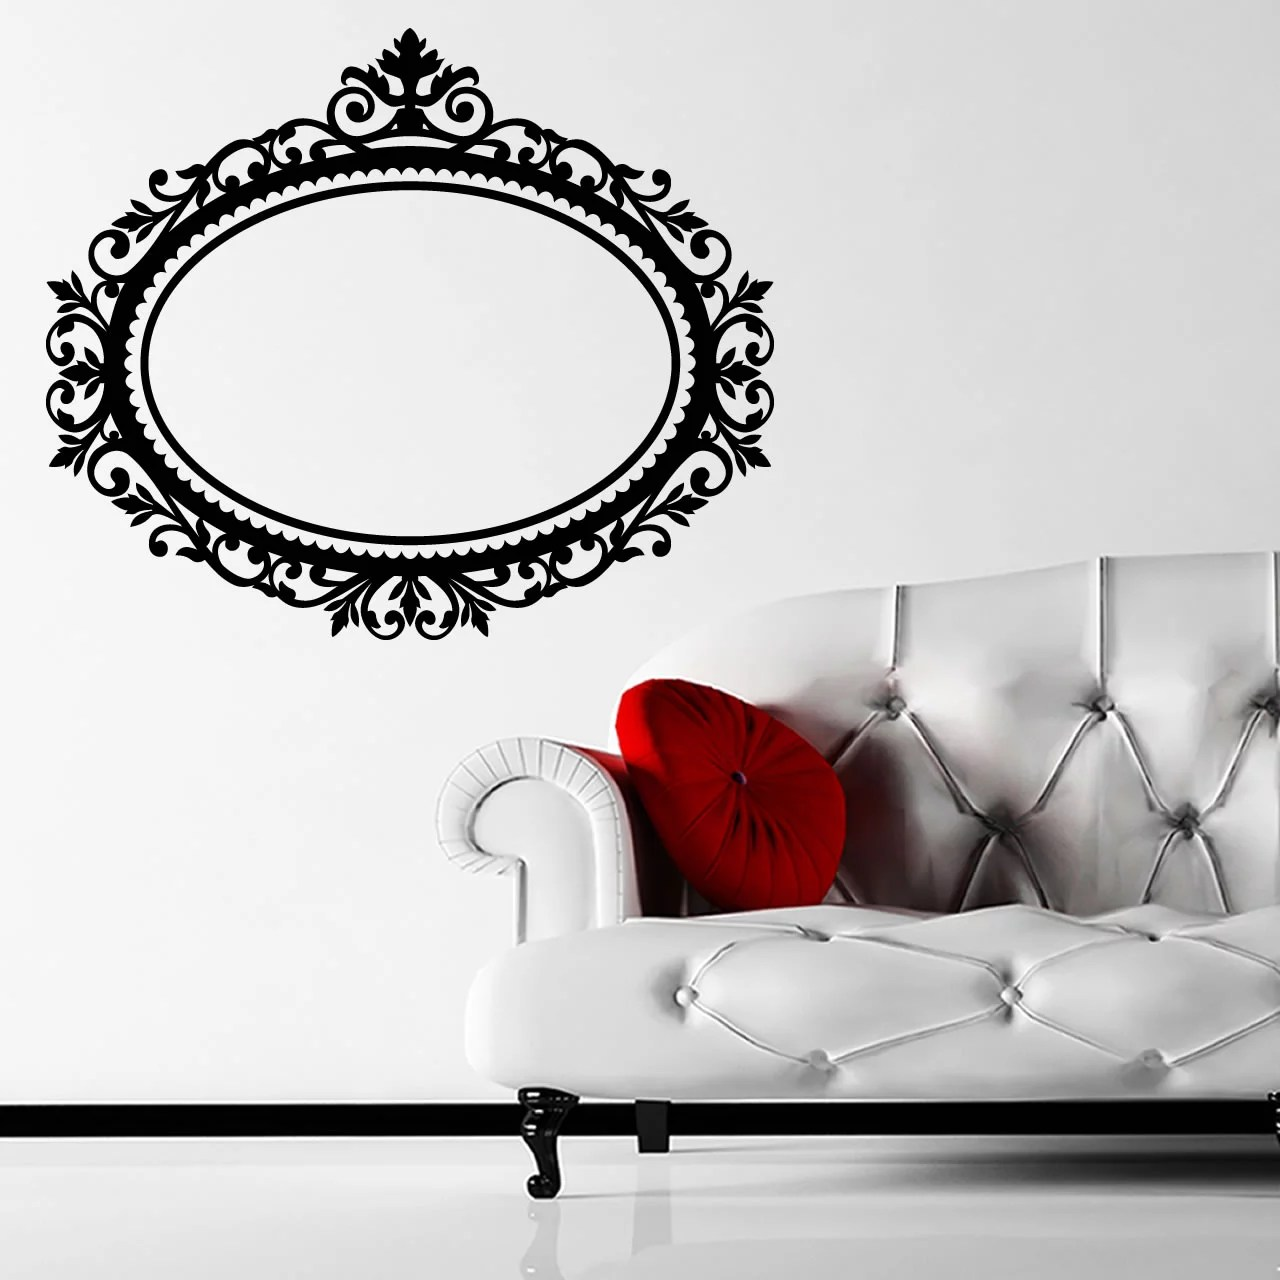 Decorative Wall Stickers Decorative Frame Wall Sticker Decal World Of Wall Stickers